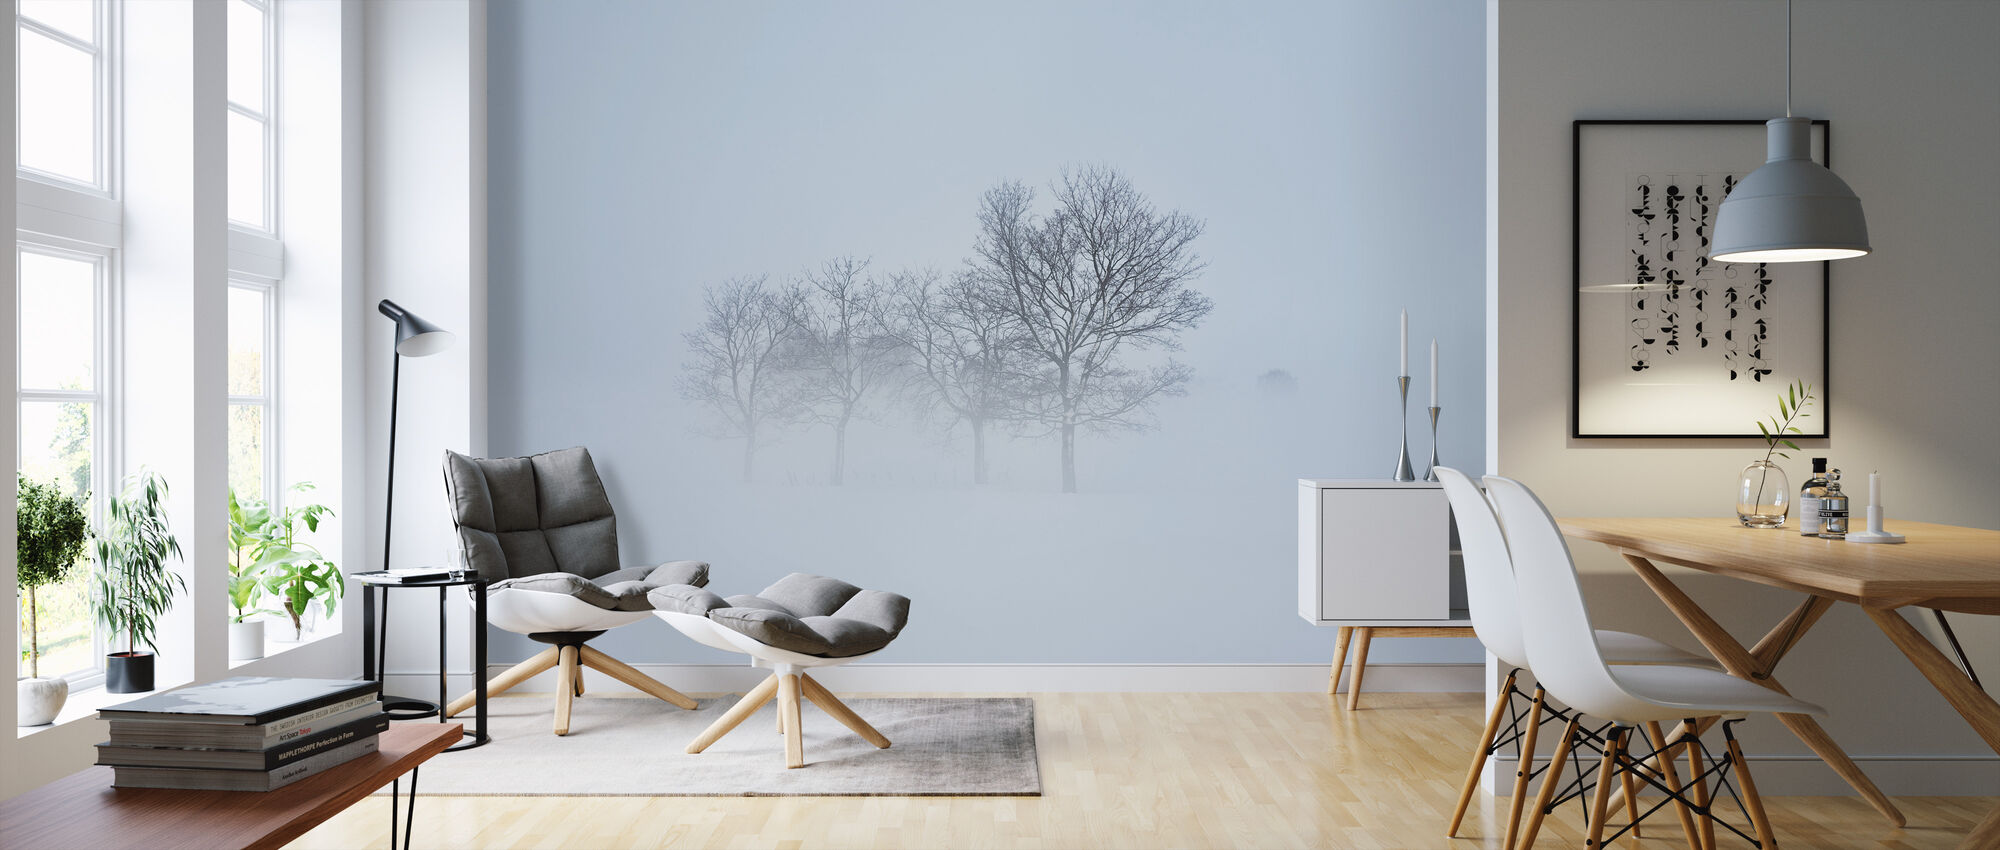 Stockholm Field hiding in Fog, Sweden - Wallpaper - Living Room